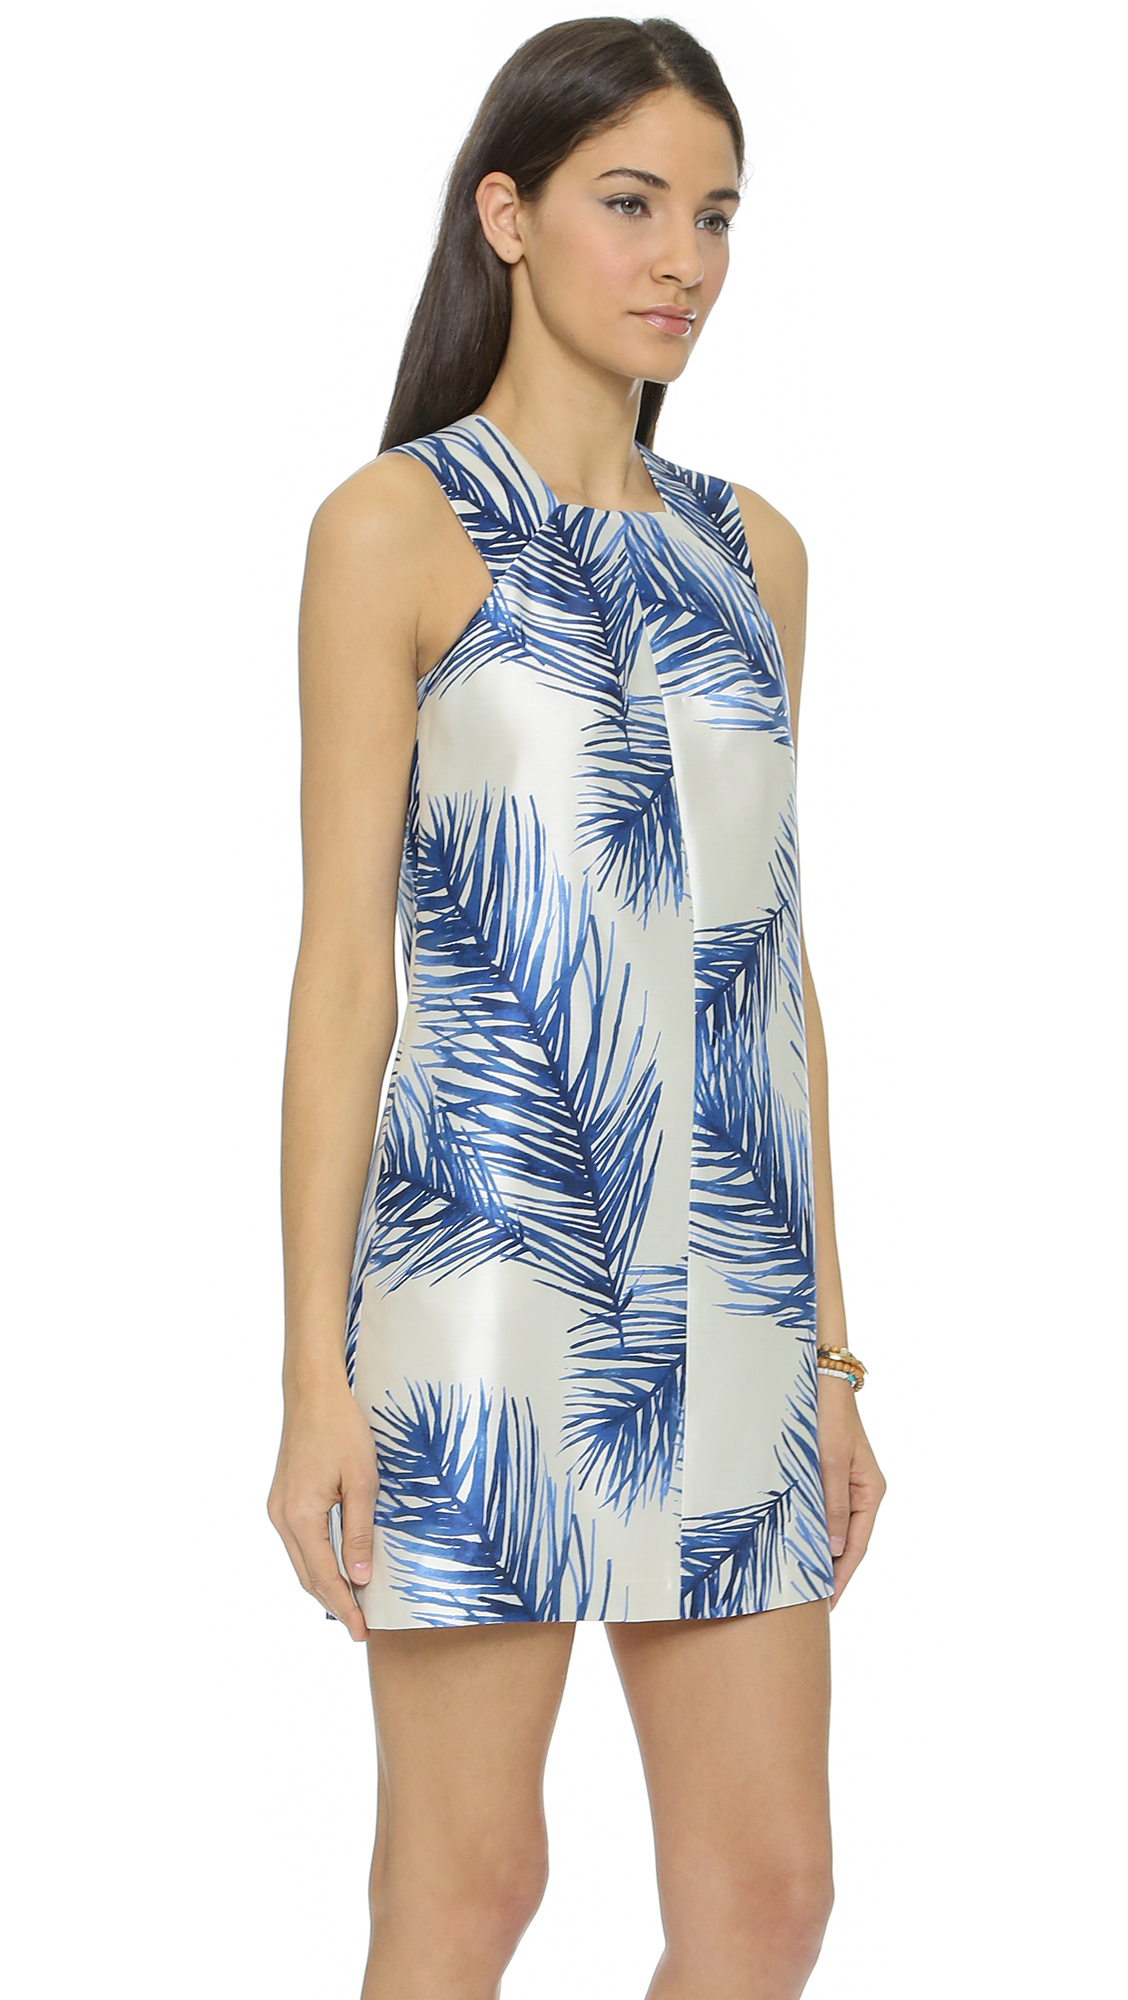 Tory Burch Silk Square Neck Dress Baltic Sea Feathers In